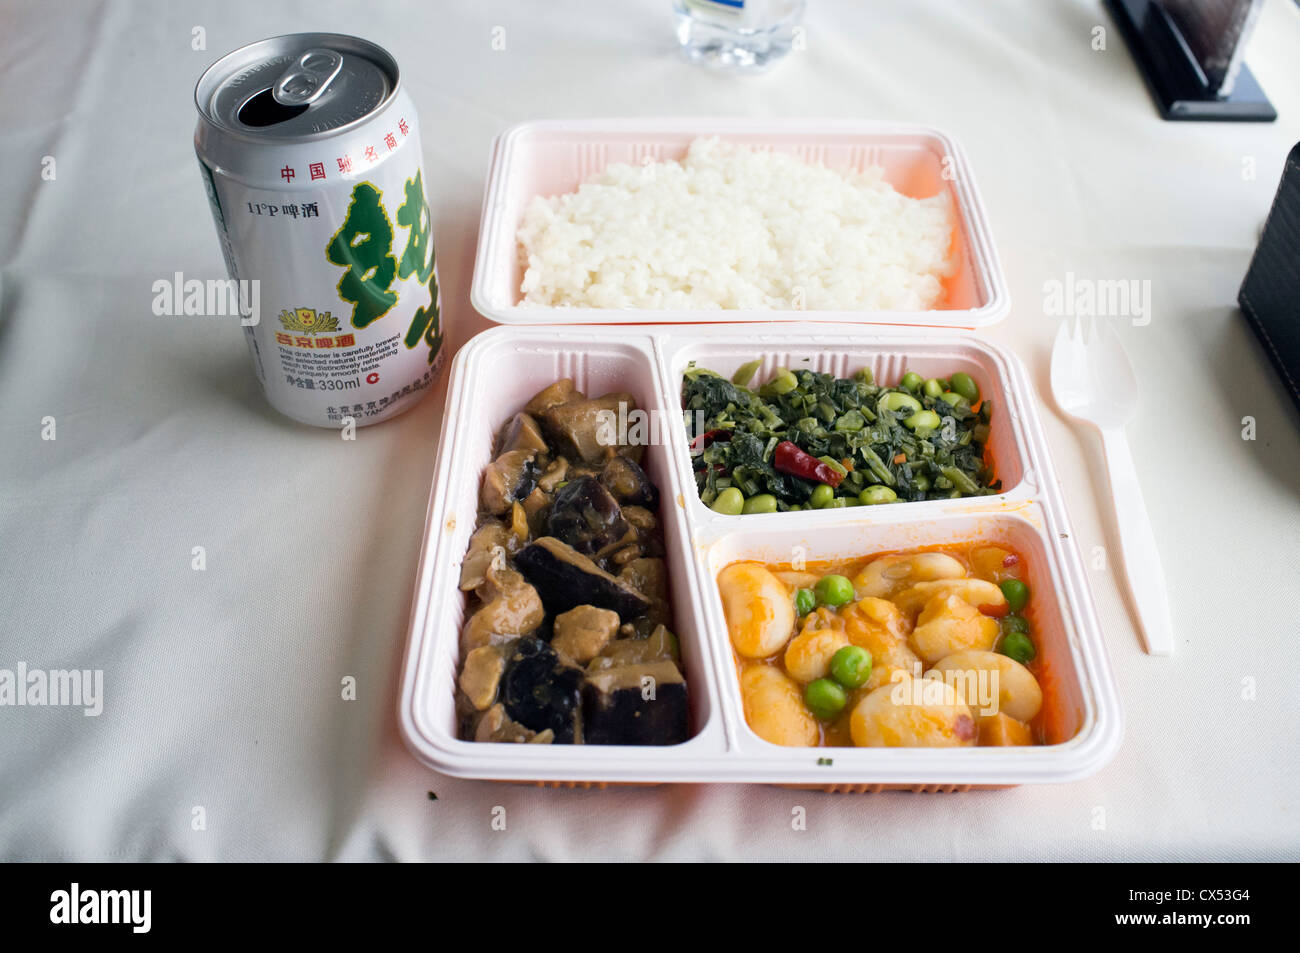 Lunch on high speed train between Beijing and Shanghai in China - Stock Image